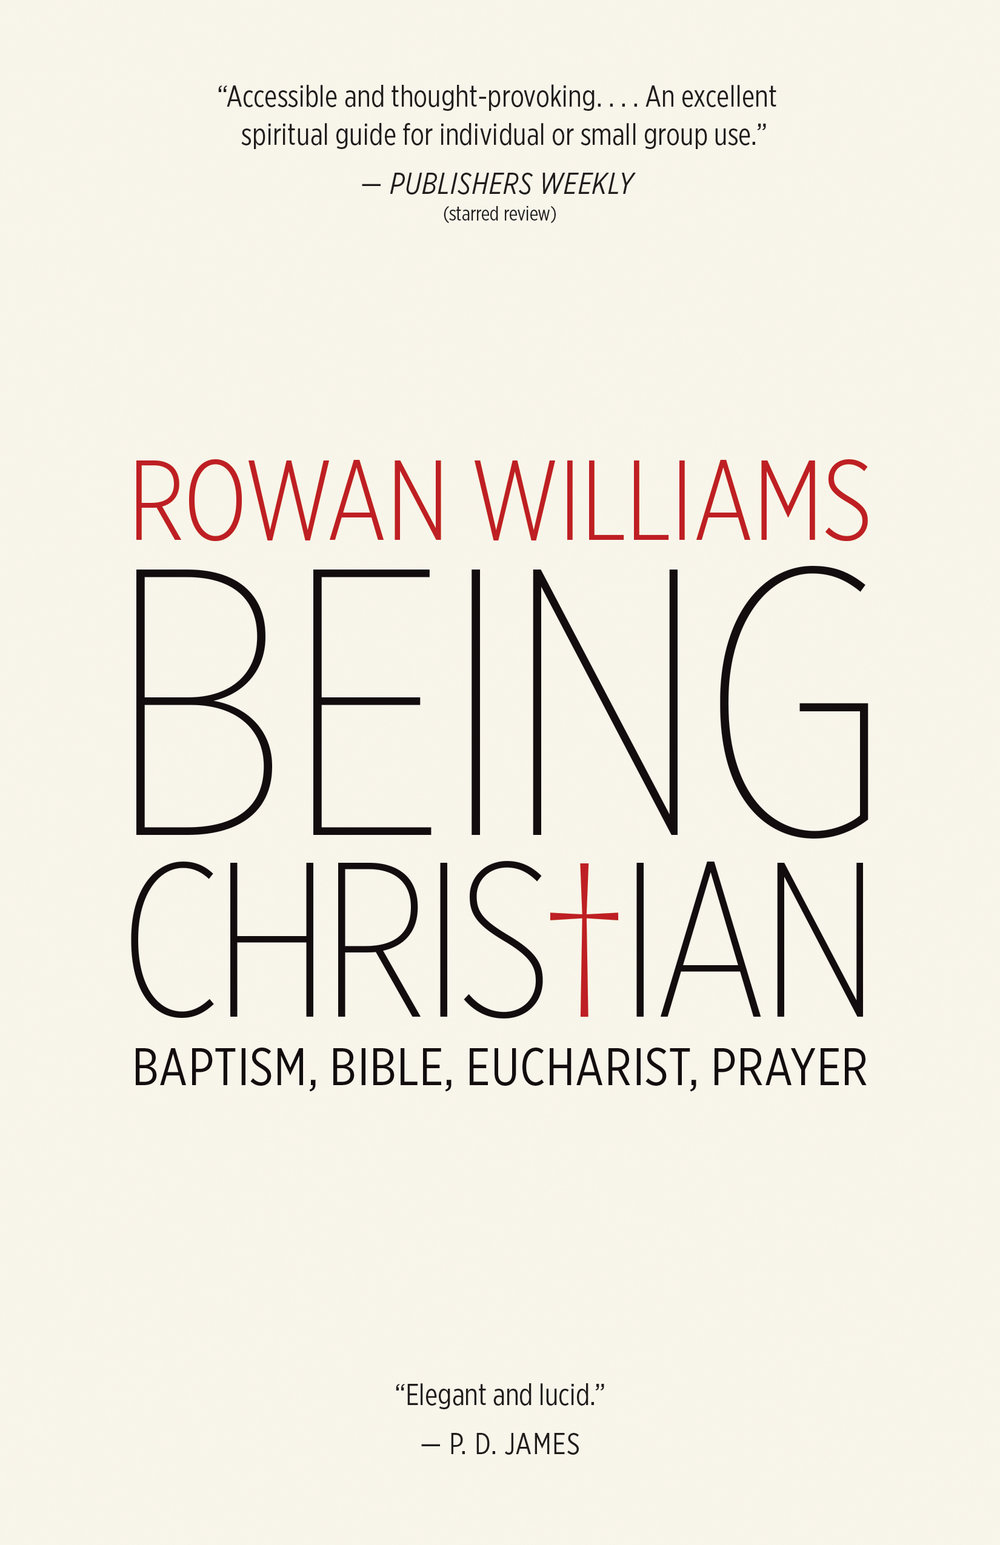 Being Christian: Baptism, Bible, Eucharist, Prayer   Rowan Williams